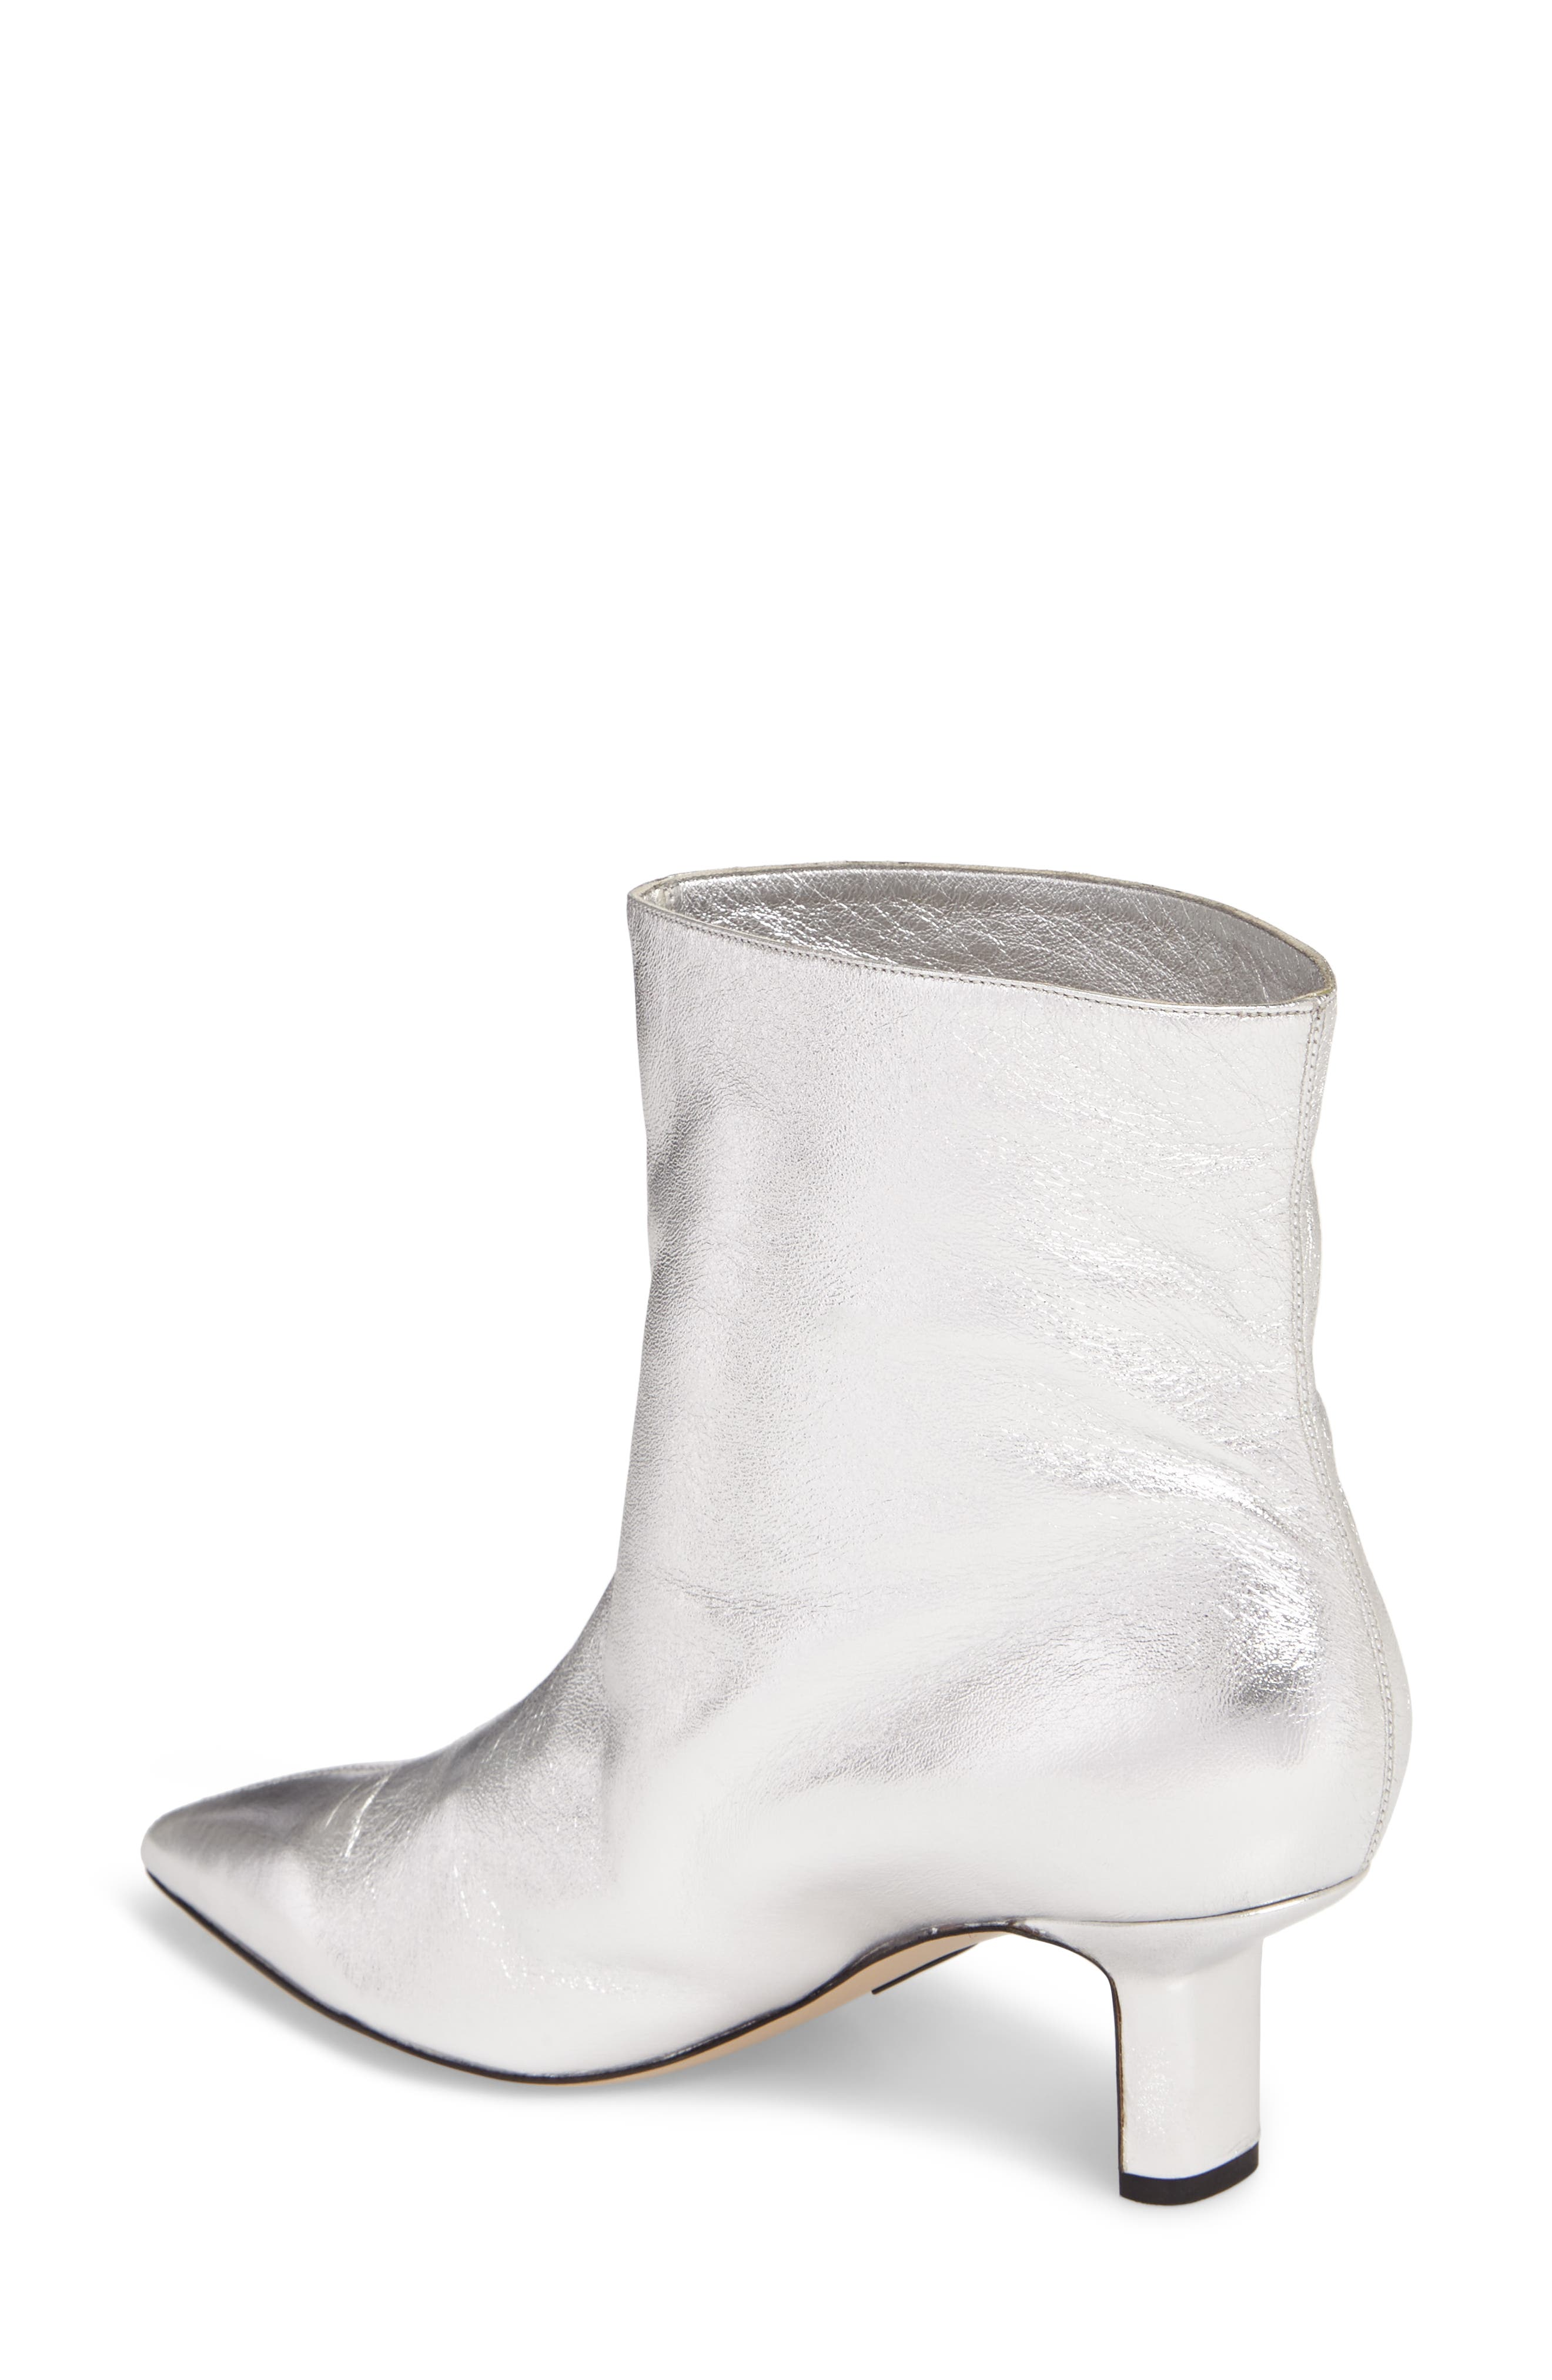 Mangold Pointy Toe Boot,                             Alternate thumbnail 2, color,                             040